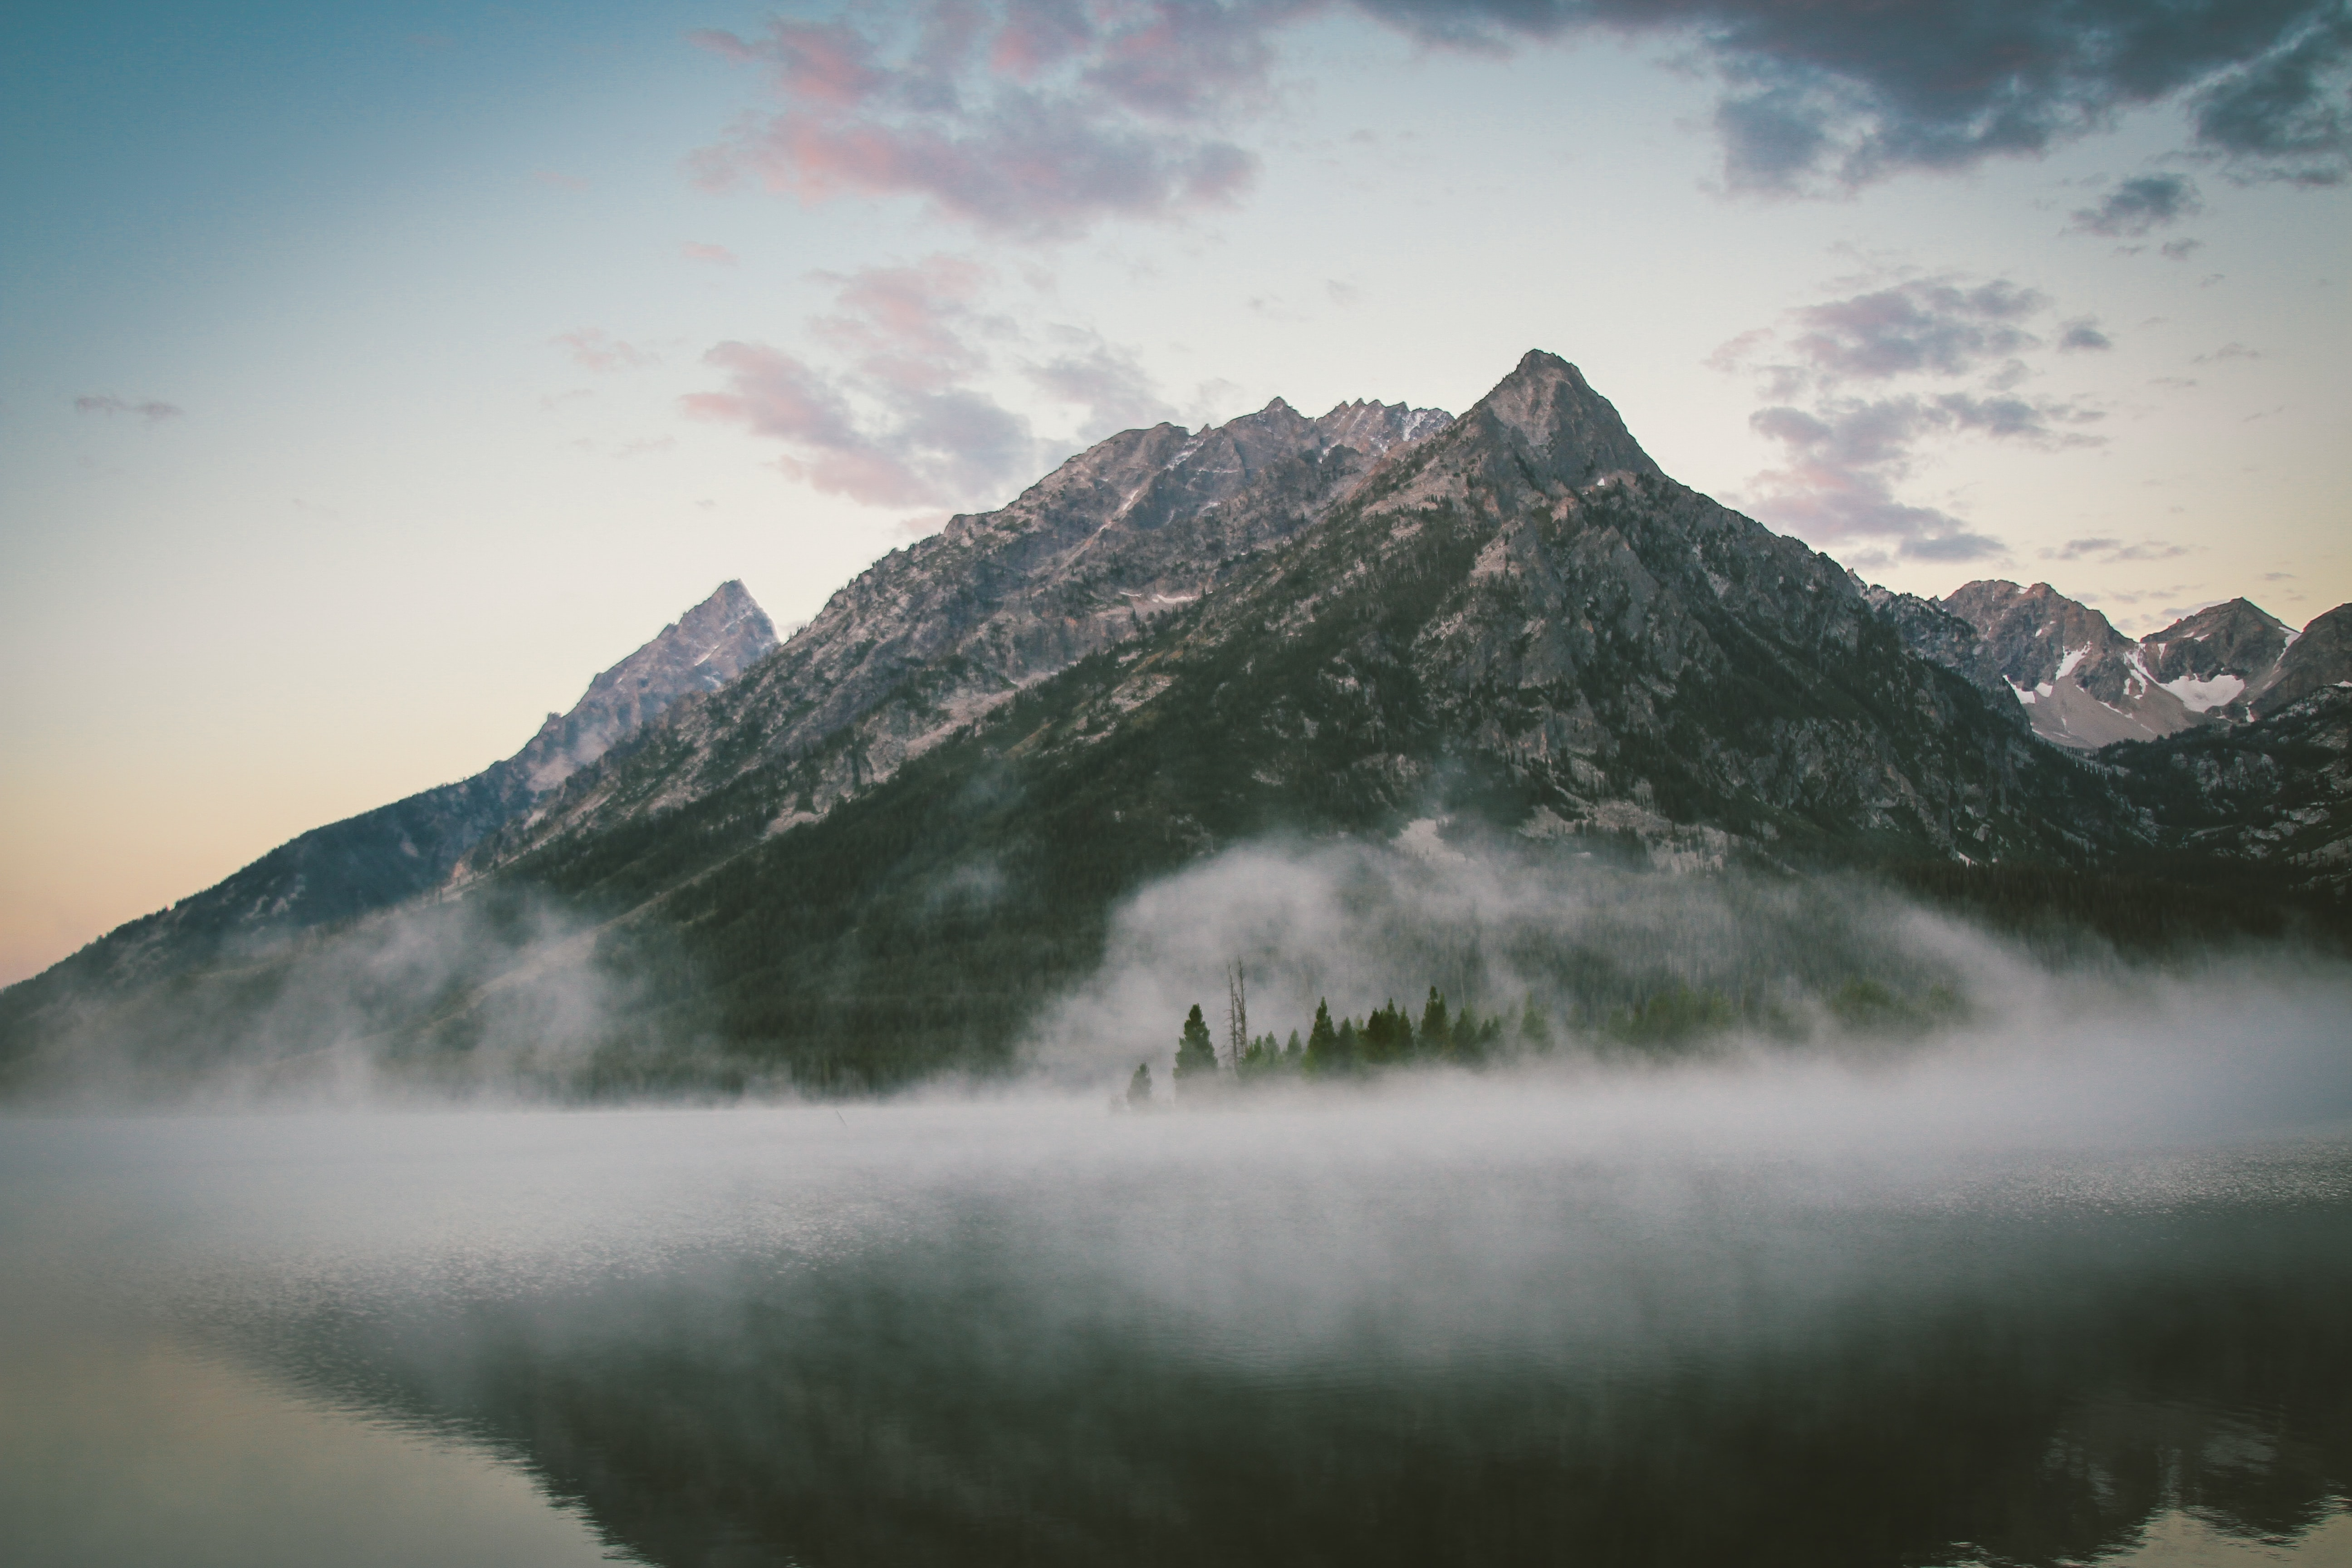 A majestic mountain peak with a mist at its foot towering over the calm surface of a lake